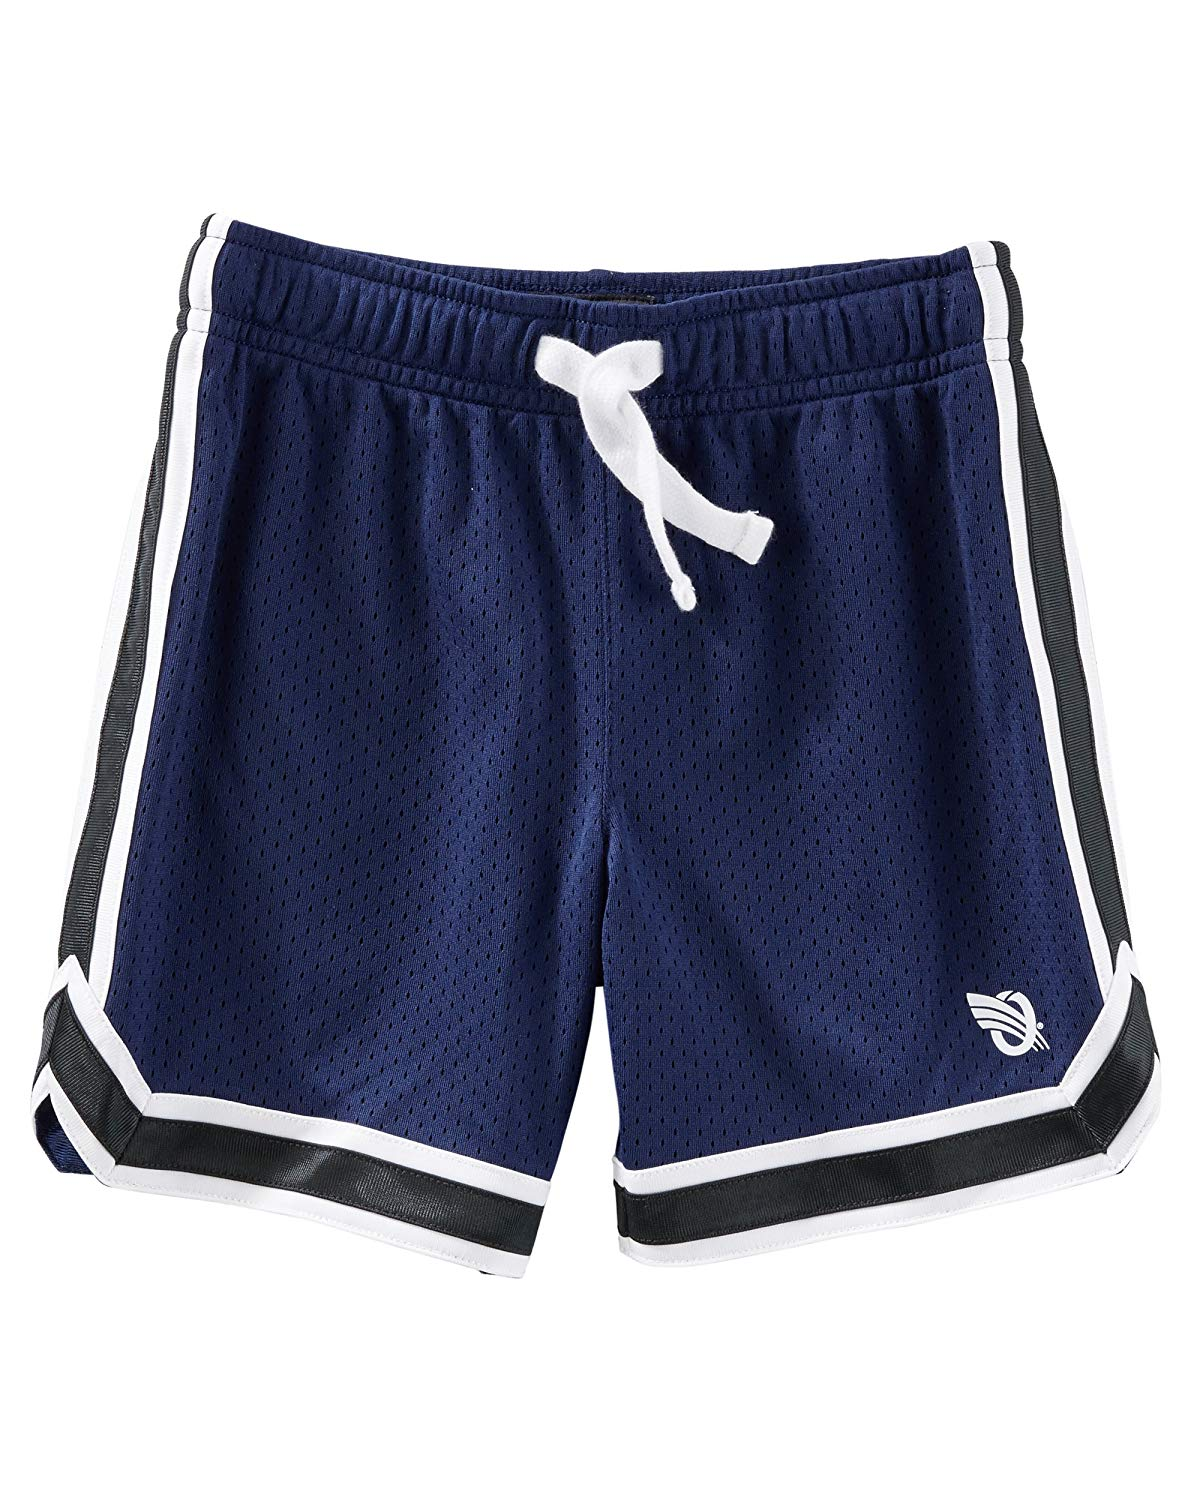 77c7d7719 Cheap Boys In Mesh Shorts, find Boys In Mesh Shorts deals on line at ...